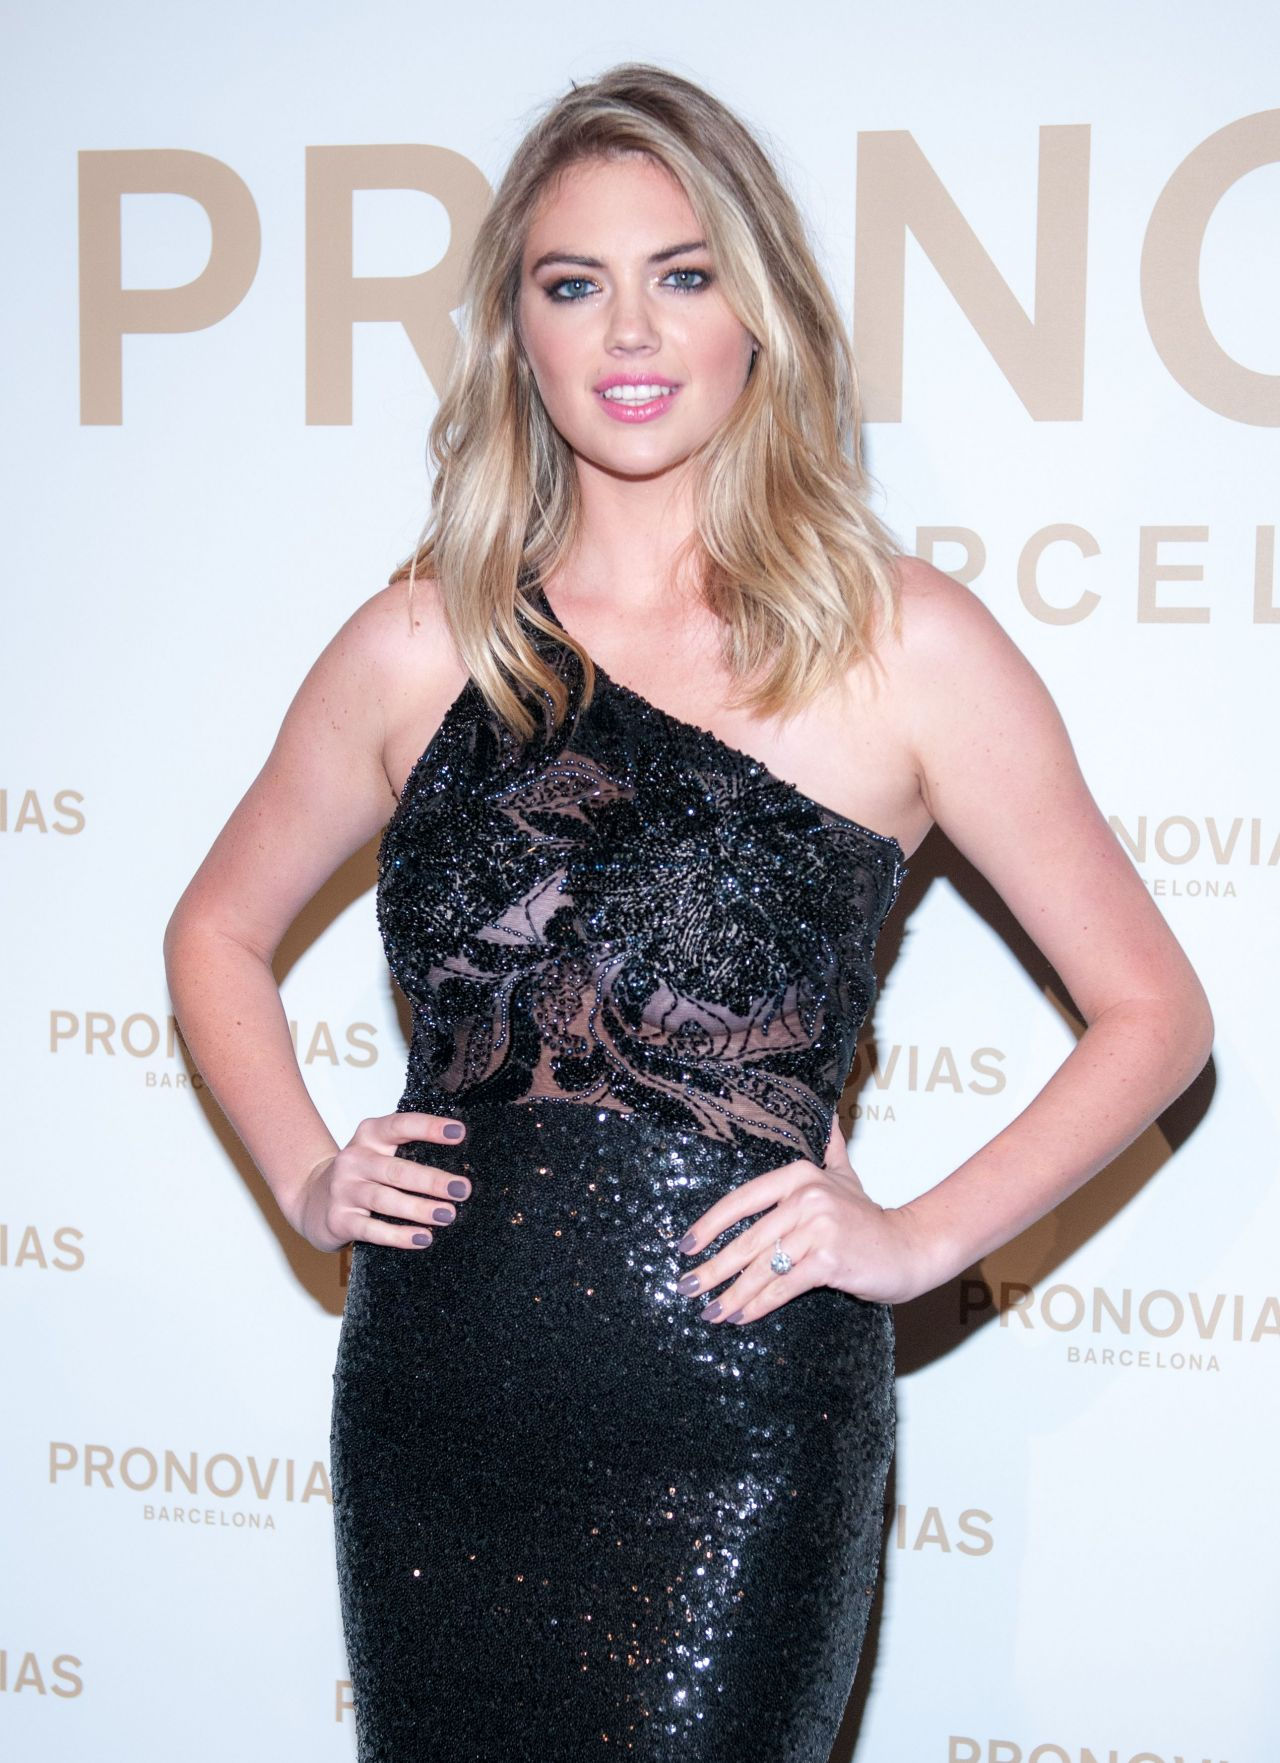 Kate Upton Barcelona Pronovias Catwalk Show